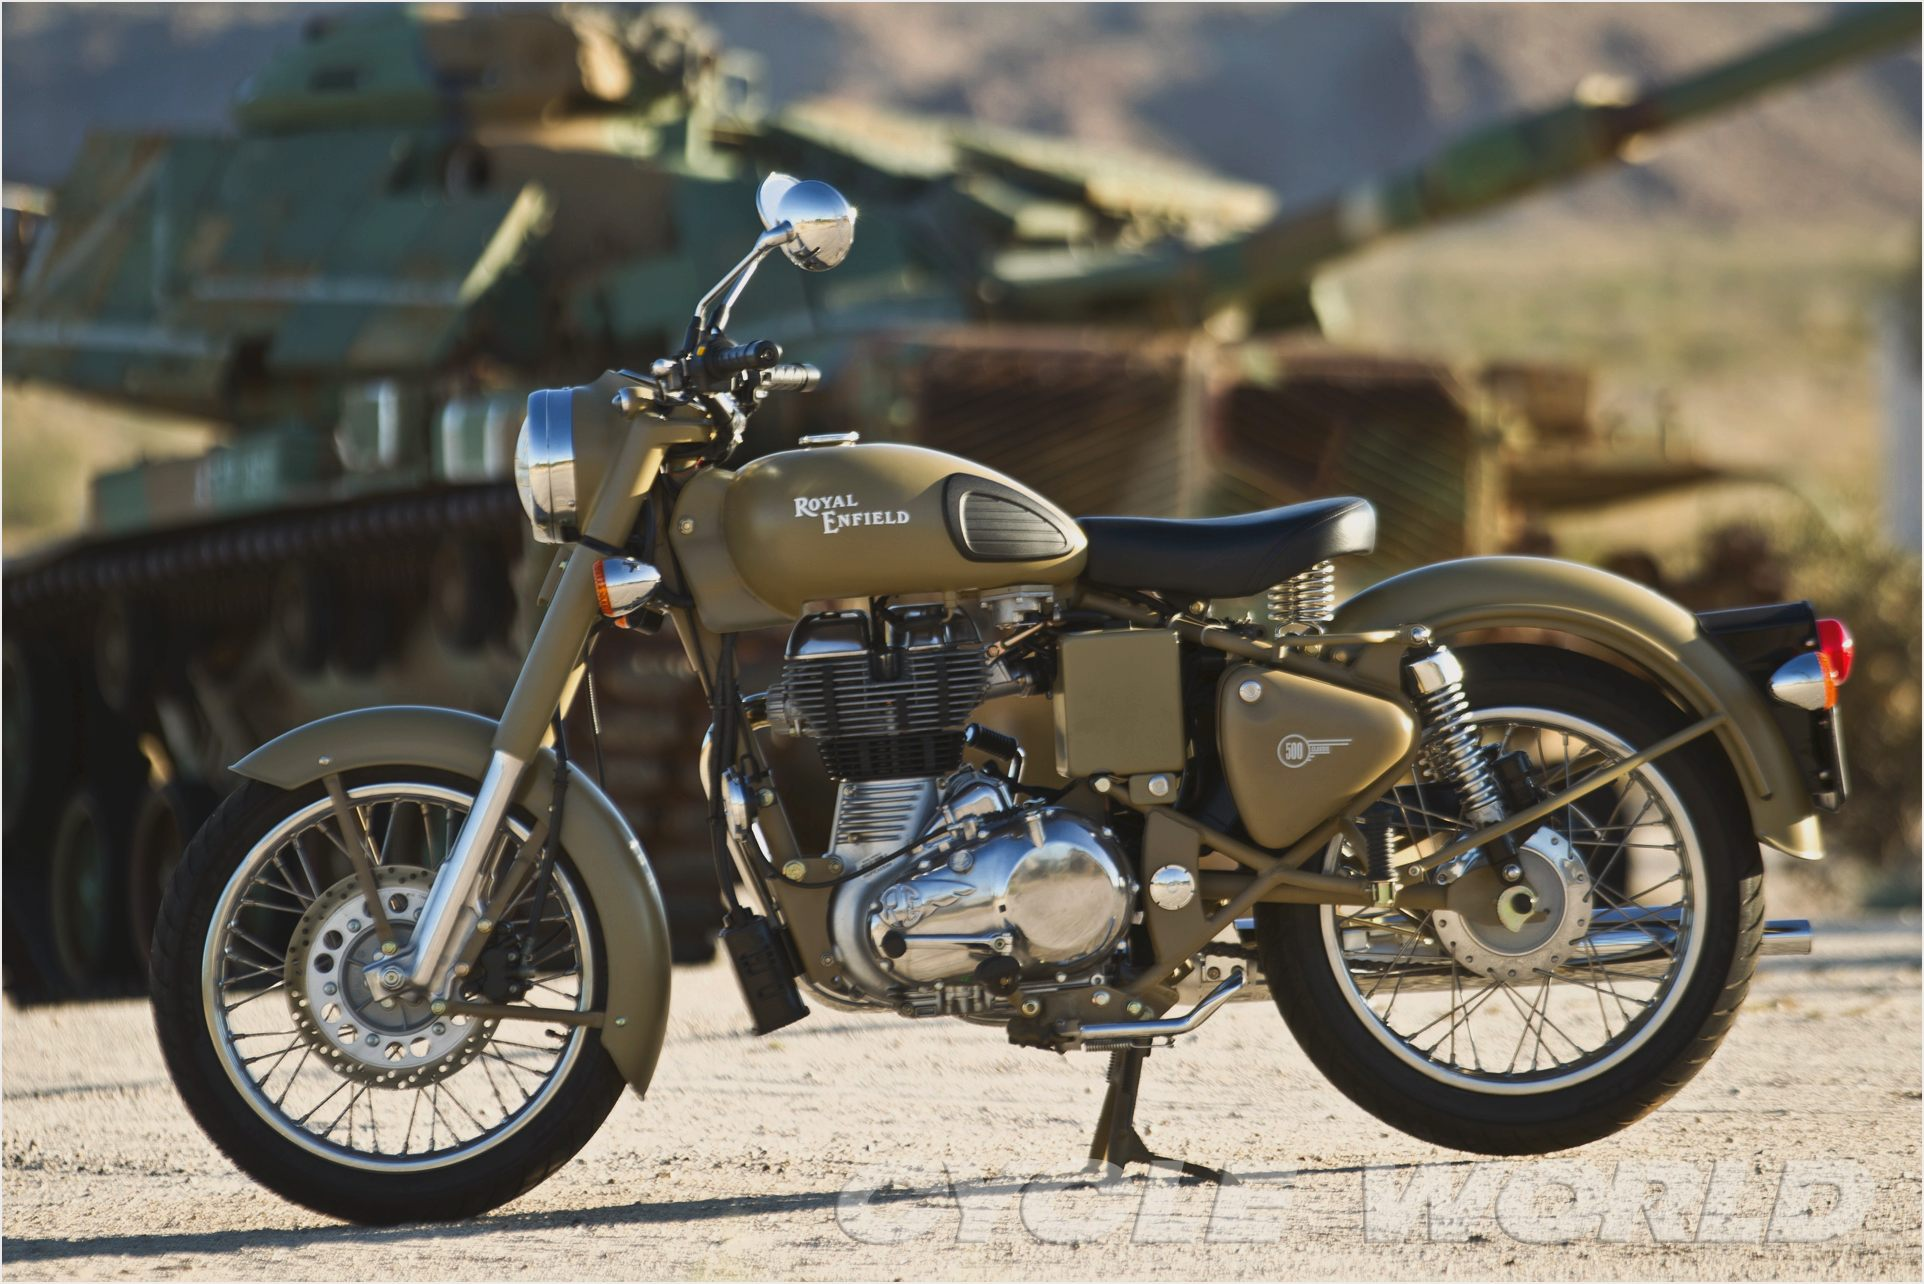 Royal Enfield Bullet 350 Classic 2009 images #123521